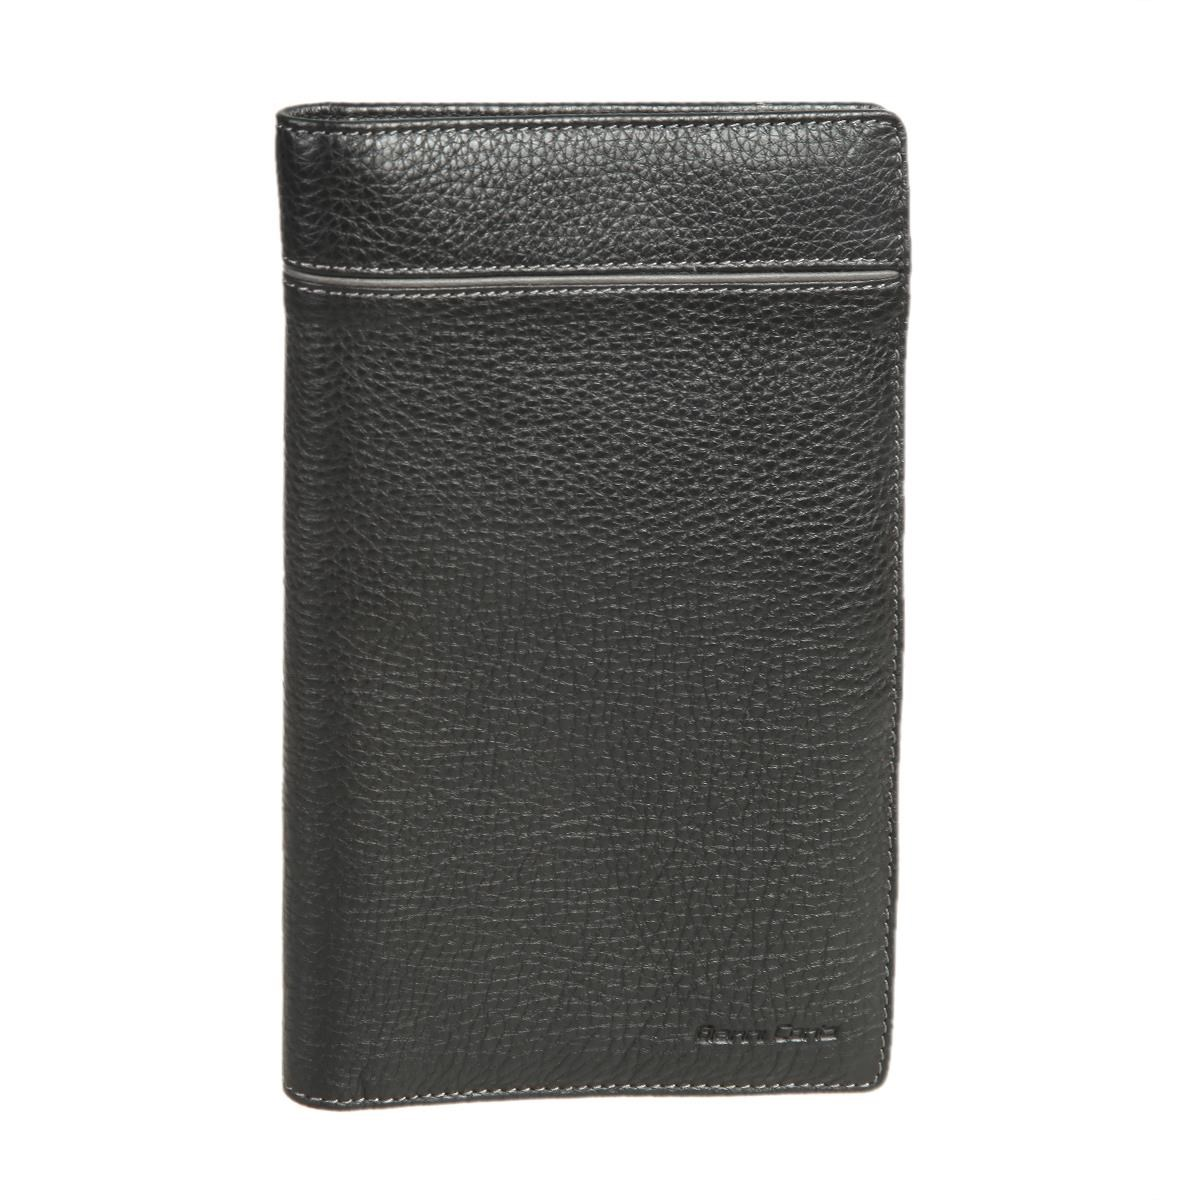 Business Card Holder desk Gianni Conti 1819125 black